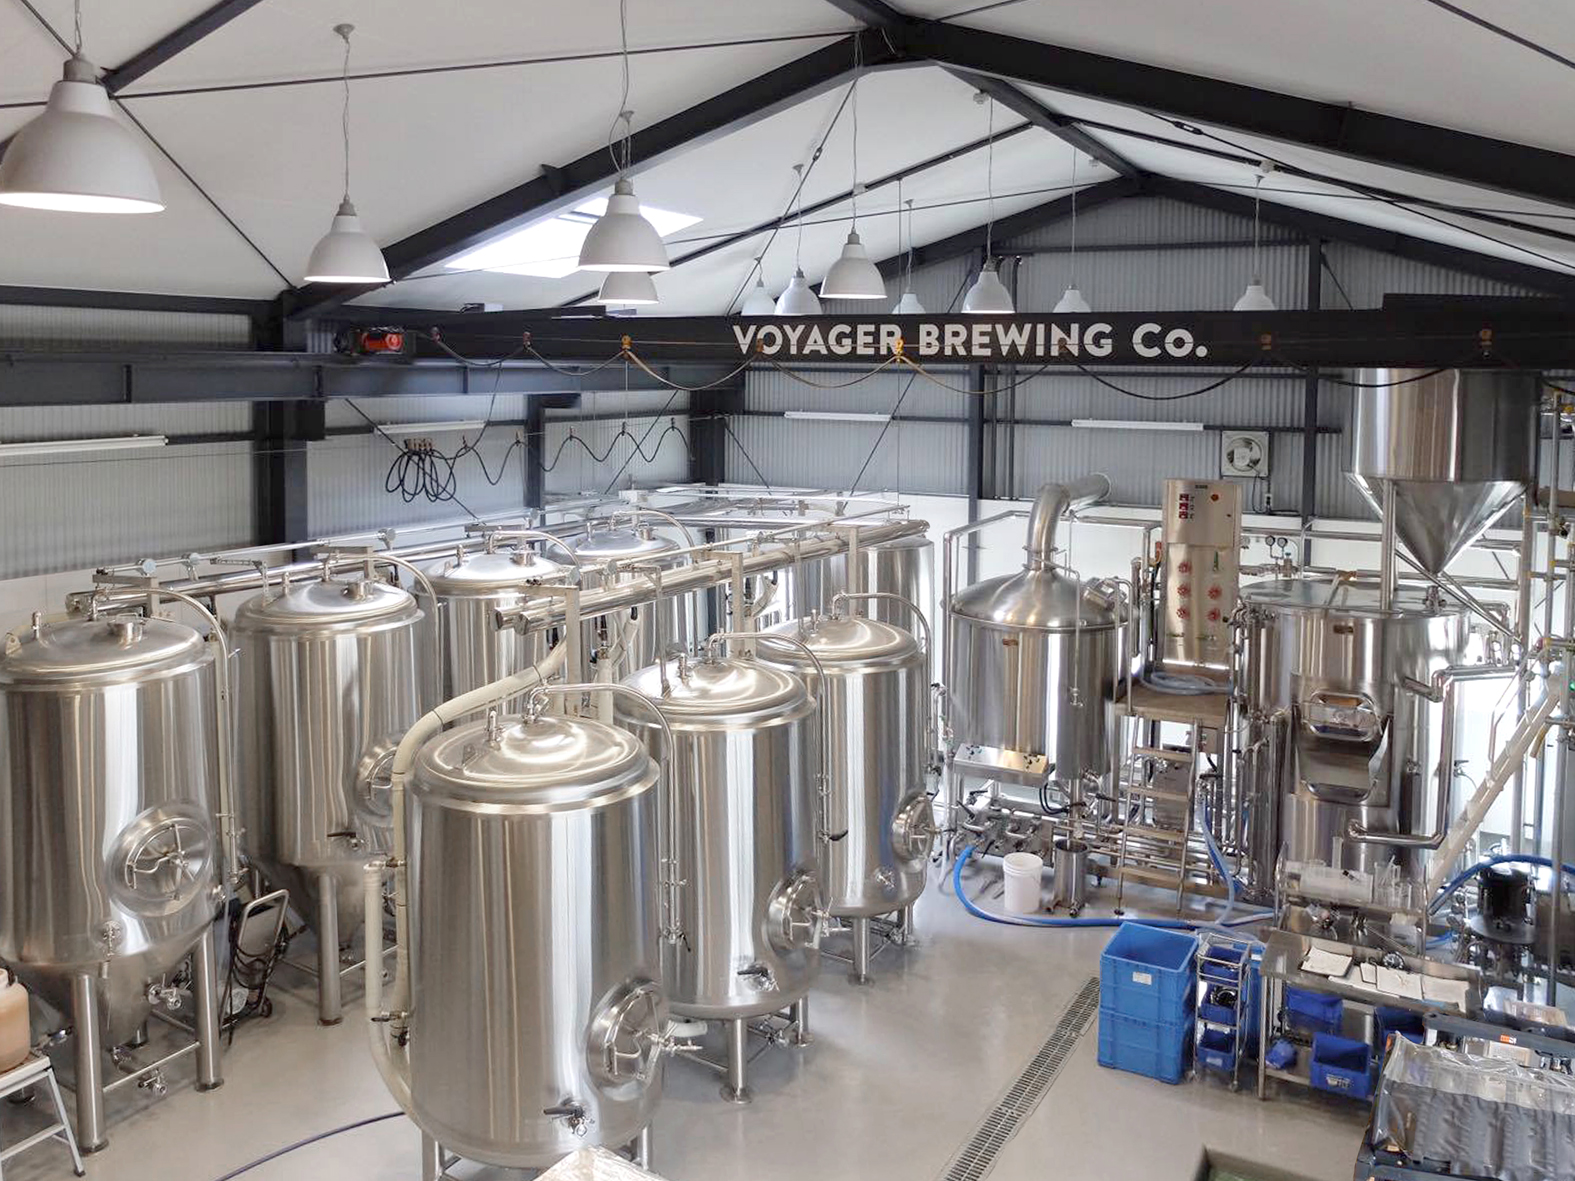 Voyager_1_Brewery